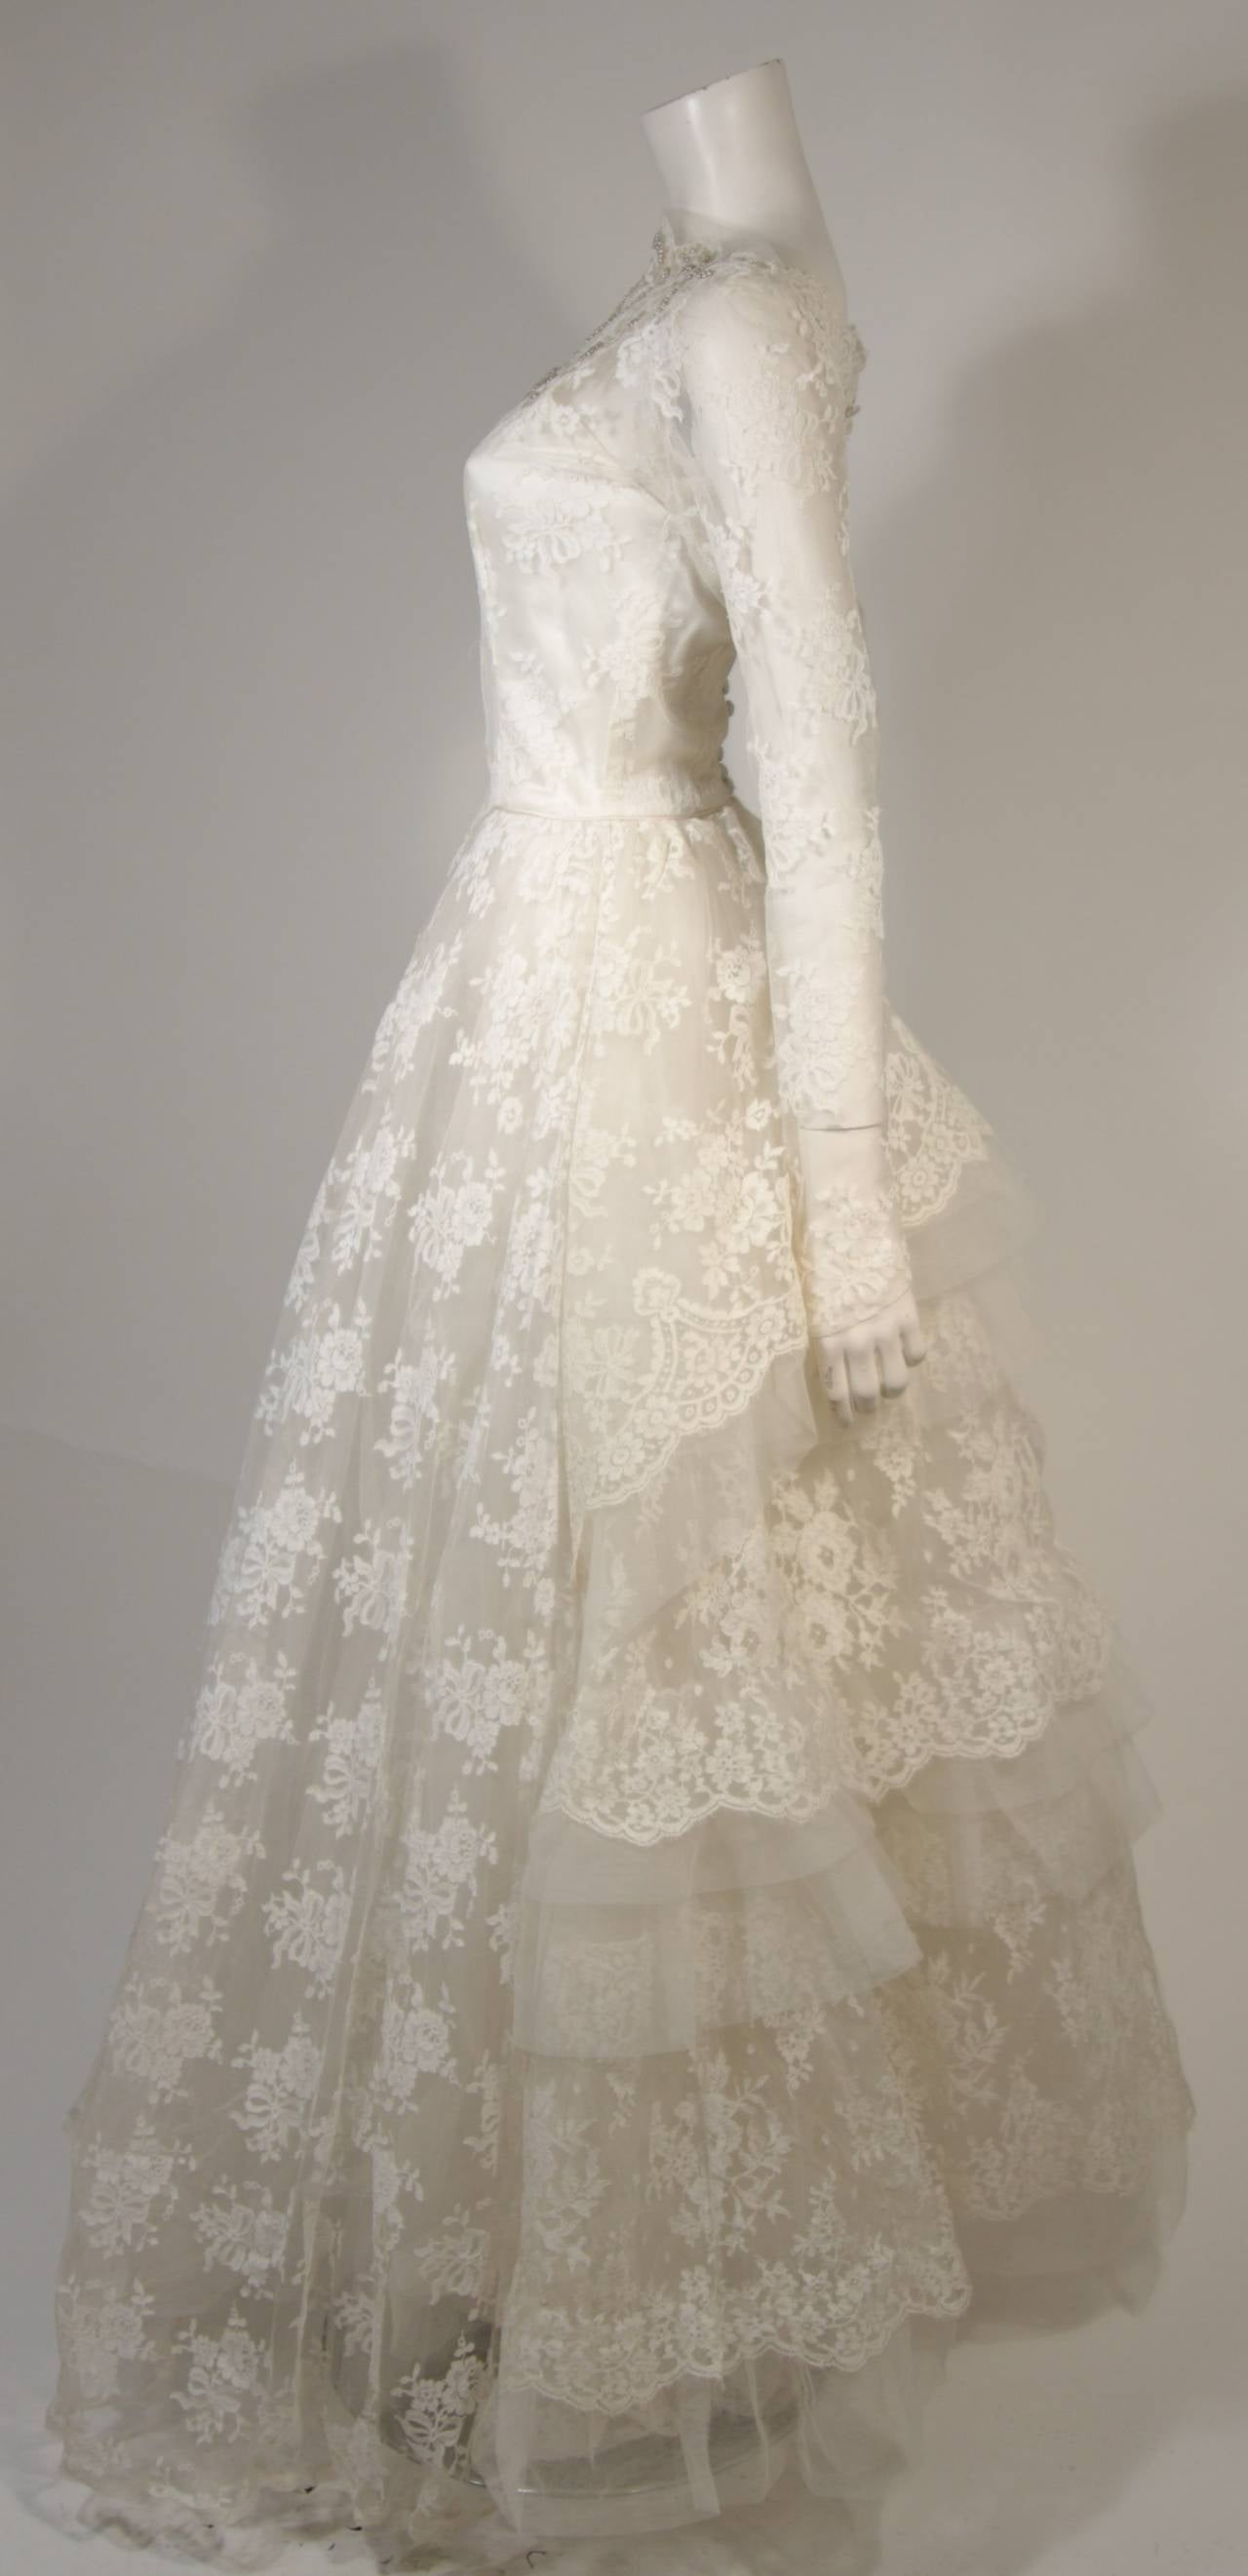 Beige Vintage Lace Wedding Gown with Scalloped Edges and Long Sleeves Size Small For Sale